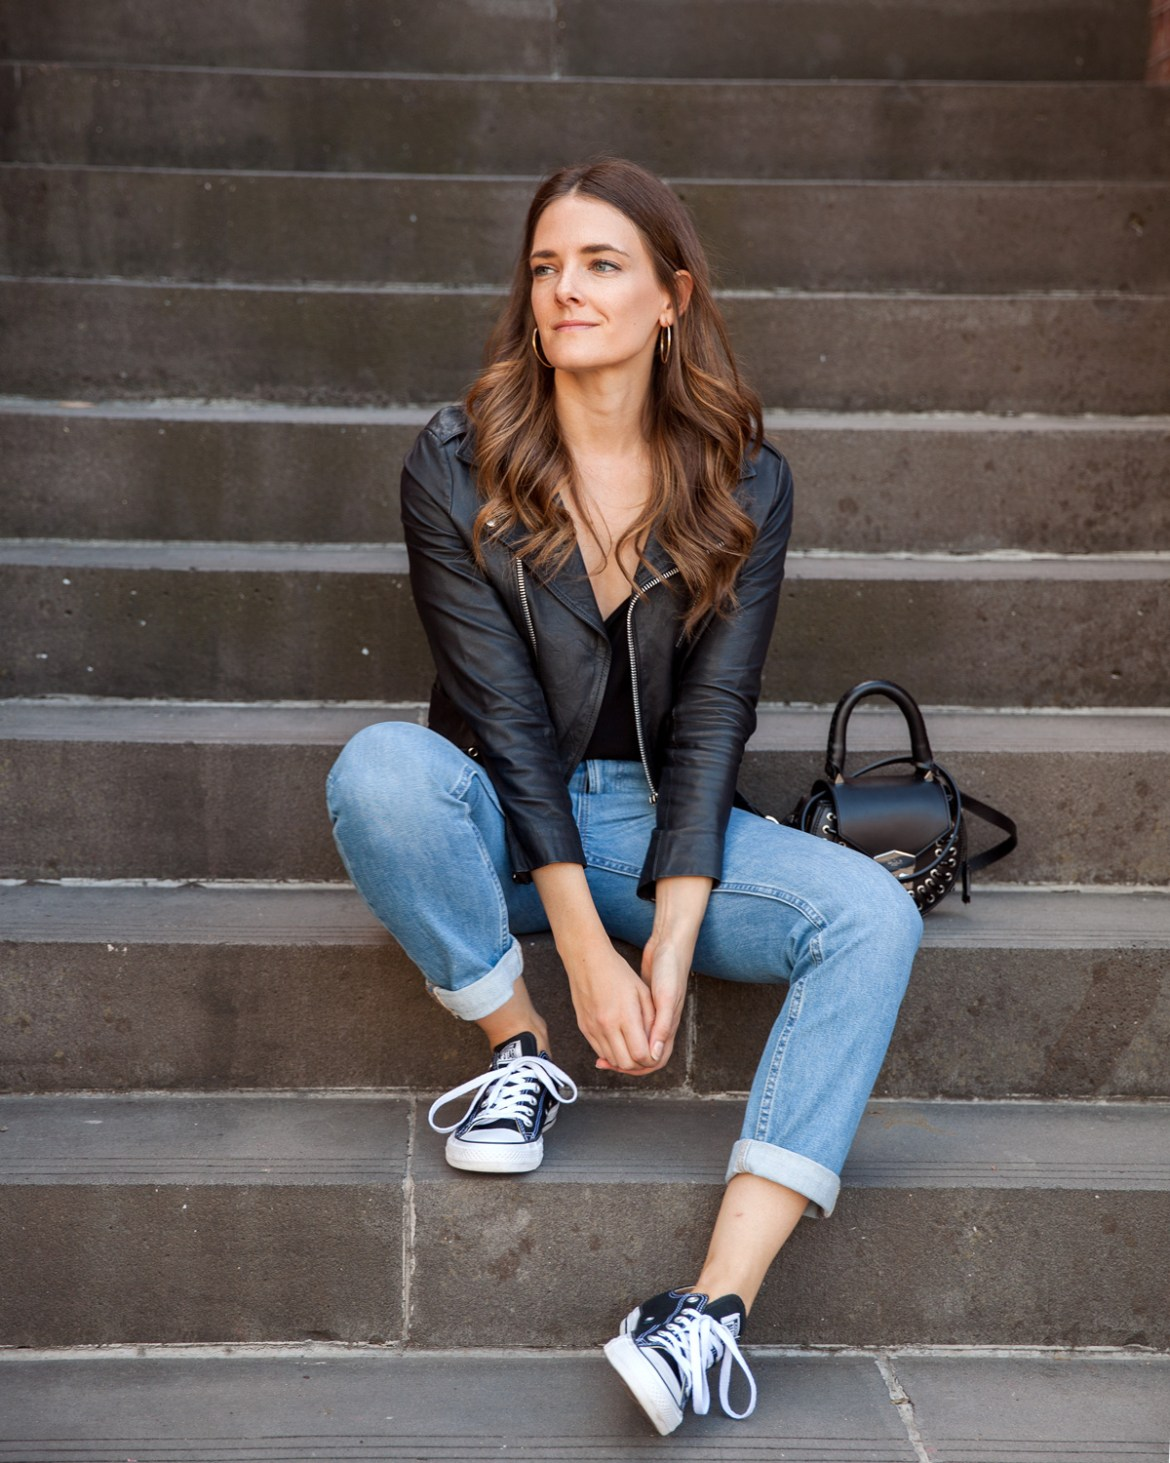 Everlane boyfriend jeans worn by Australian fashion blogger Jenelle from Inspiring Wit with leather jacket and Converse